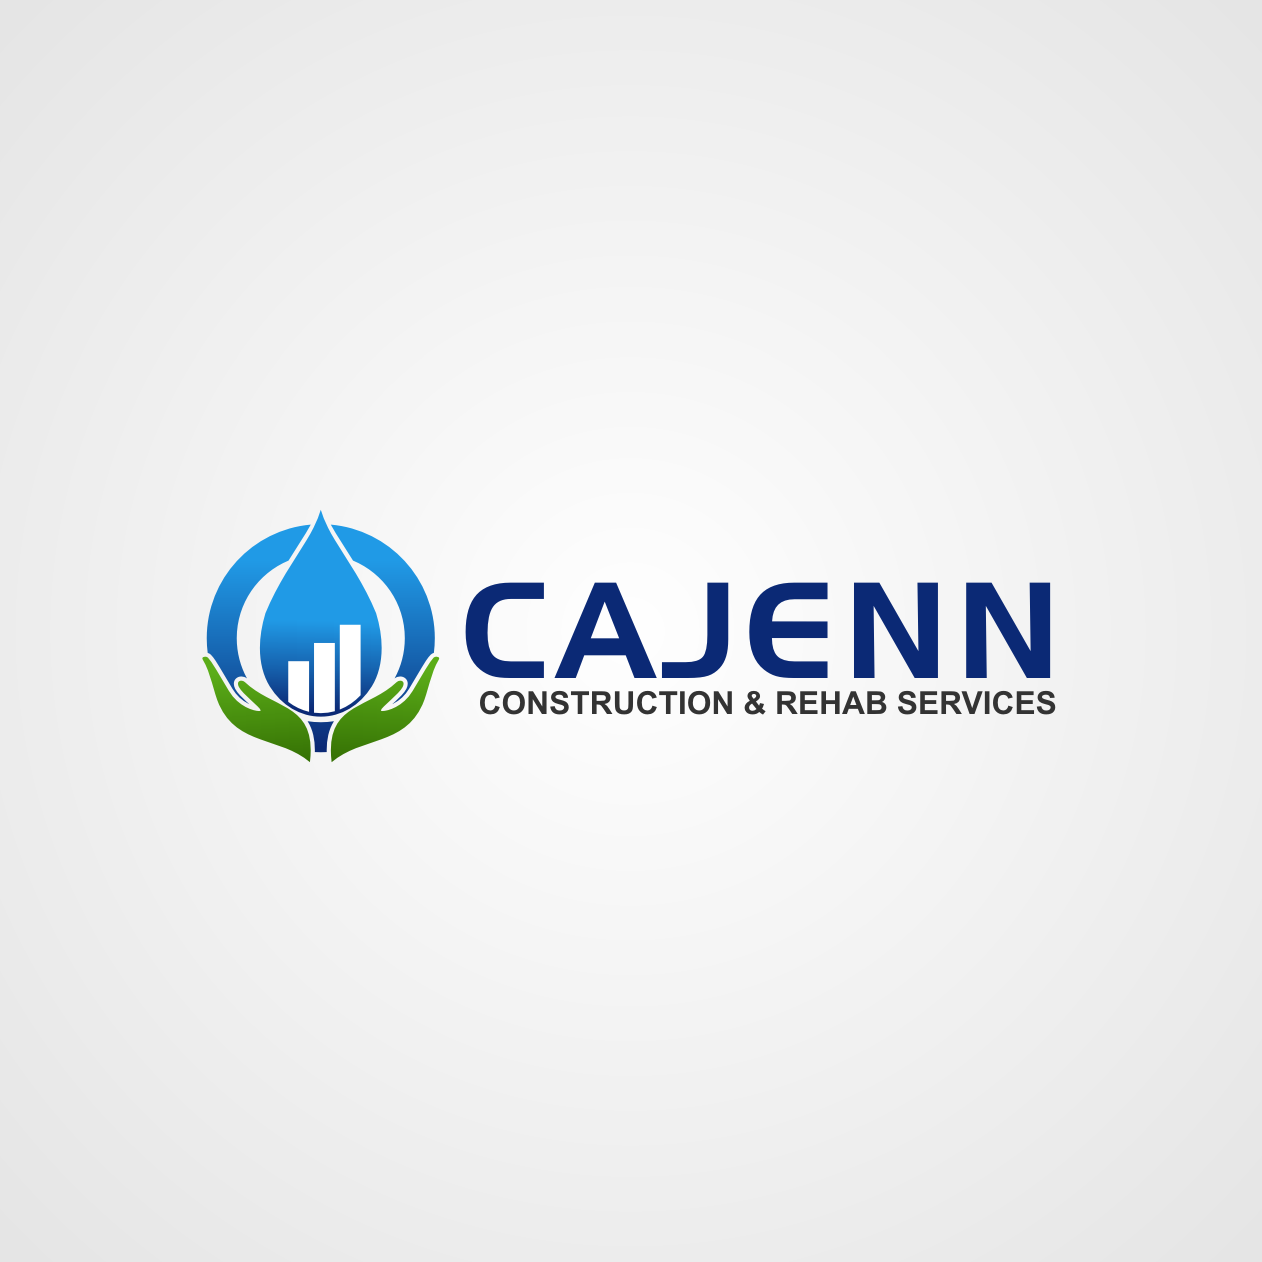 Logo Design by rifatz - Entry No. 270 in the Logo Design Contest New Logo Design for CaJenn Construction & Rehab Services.